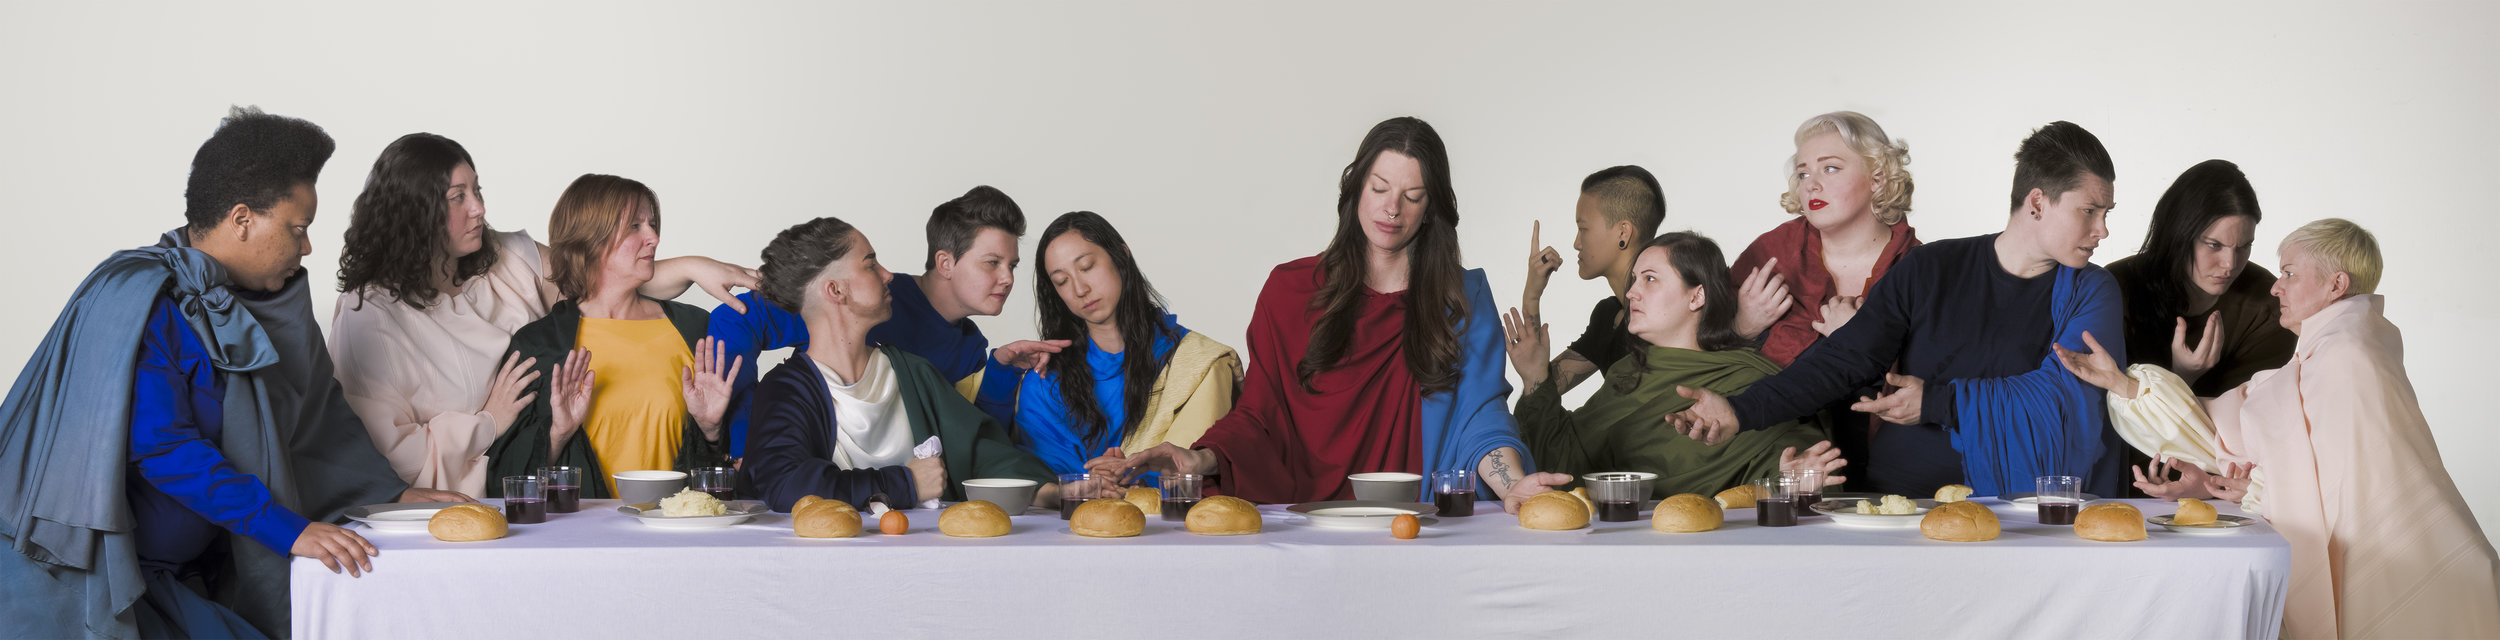 The Lesbian Last Supper. Part of Queering the Renaissance Photo Series